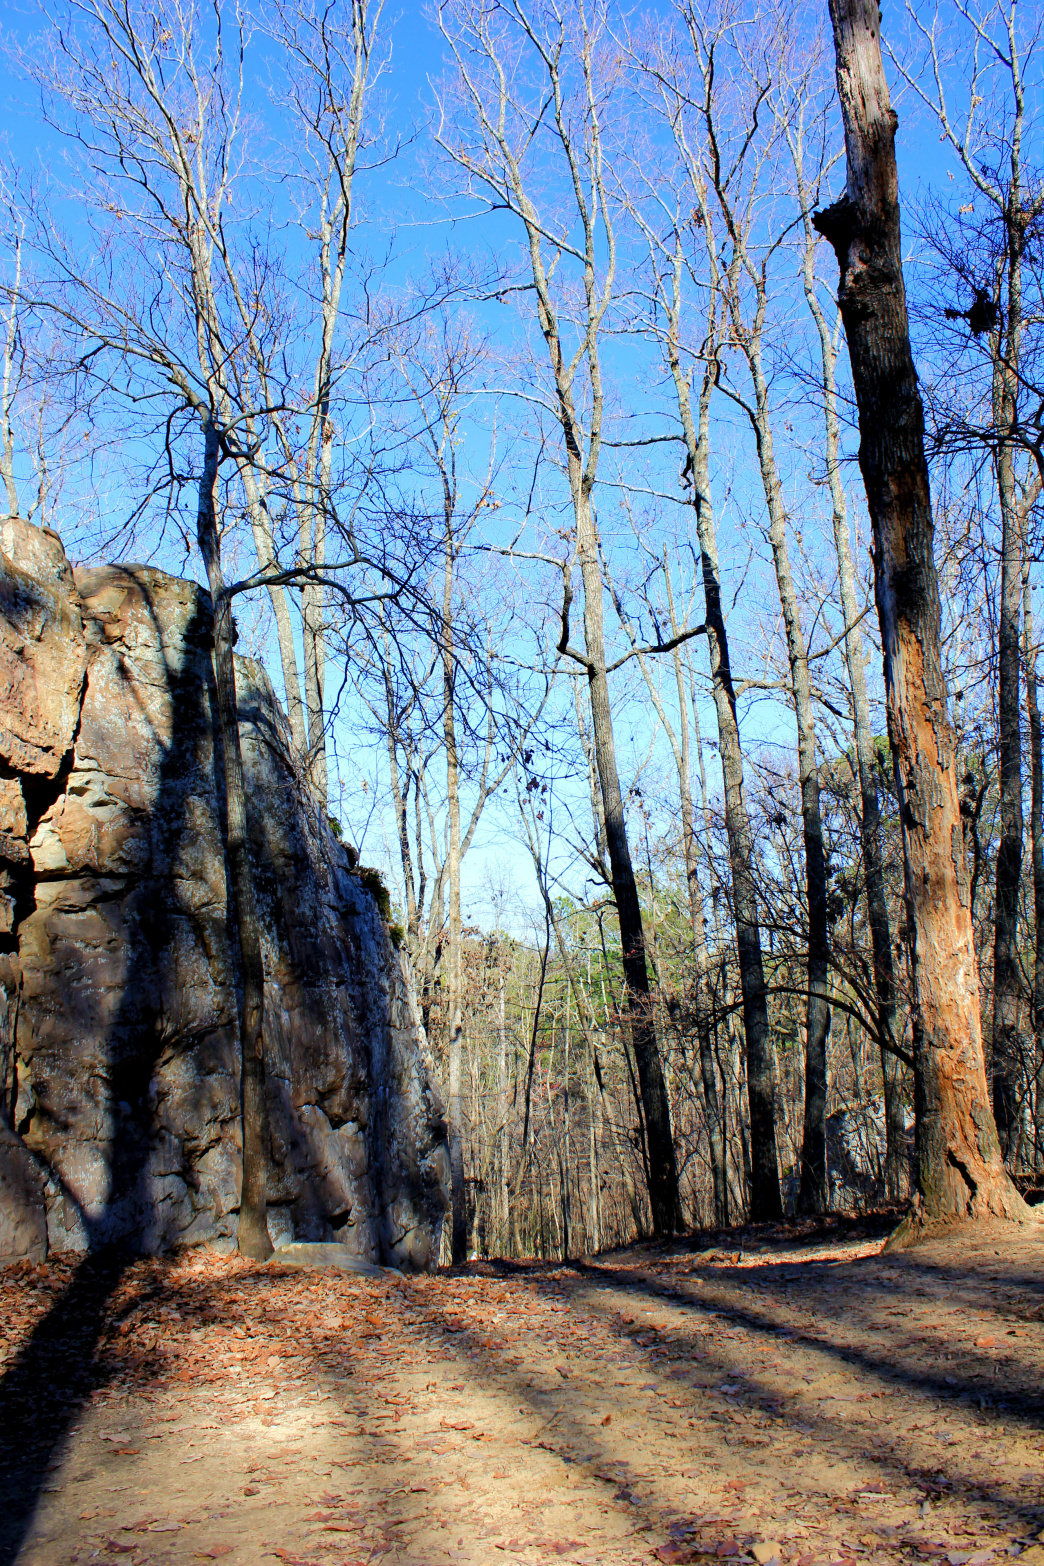 There are many trails to hike and explore at Moss Rock Preserve.